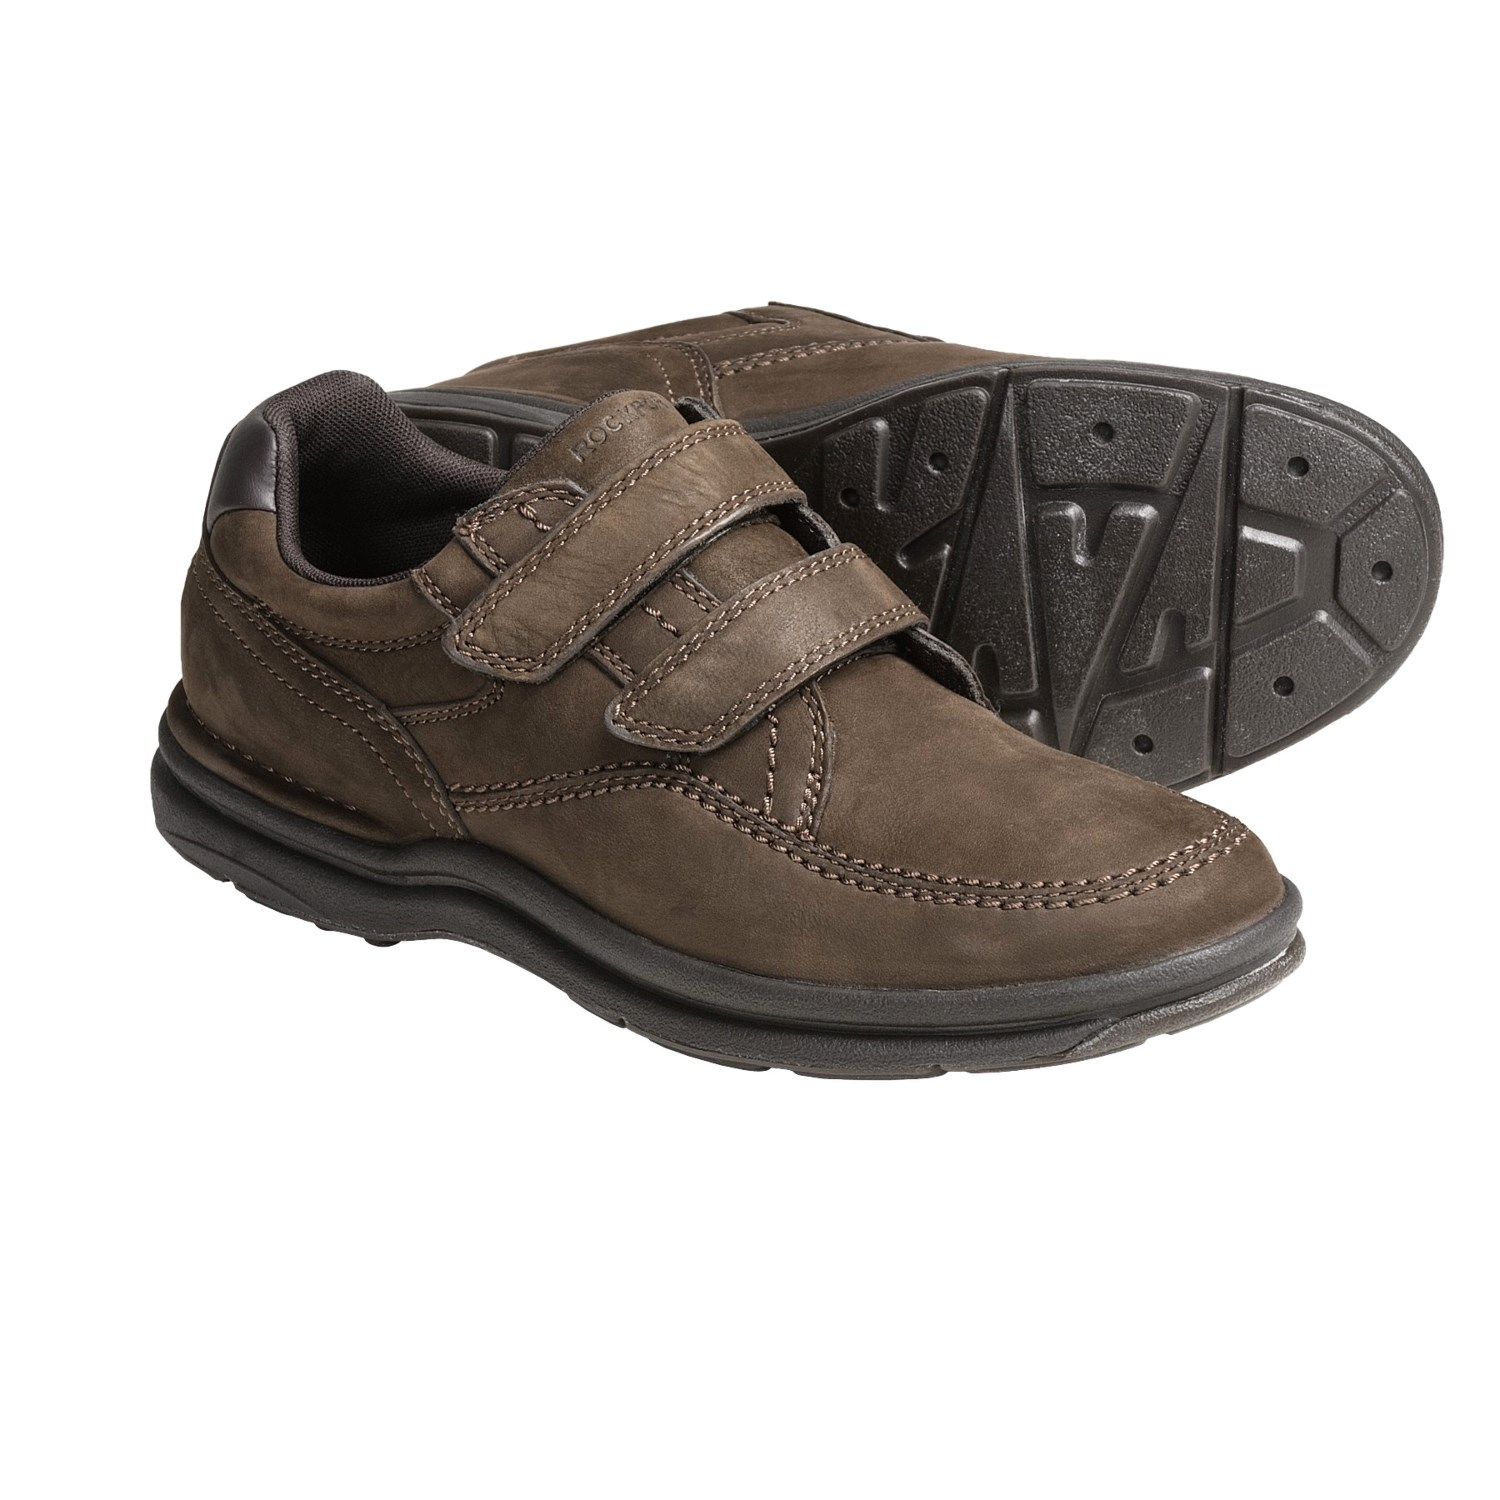 rockport casner walking shoes for 4107u save 49